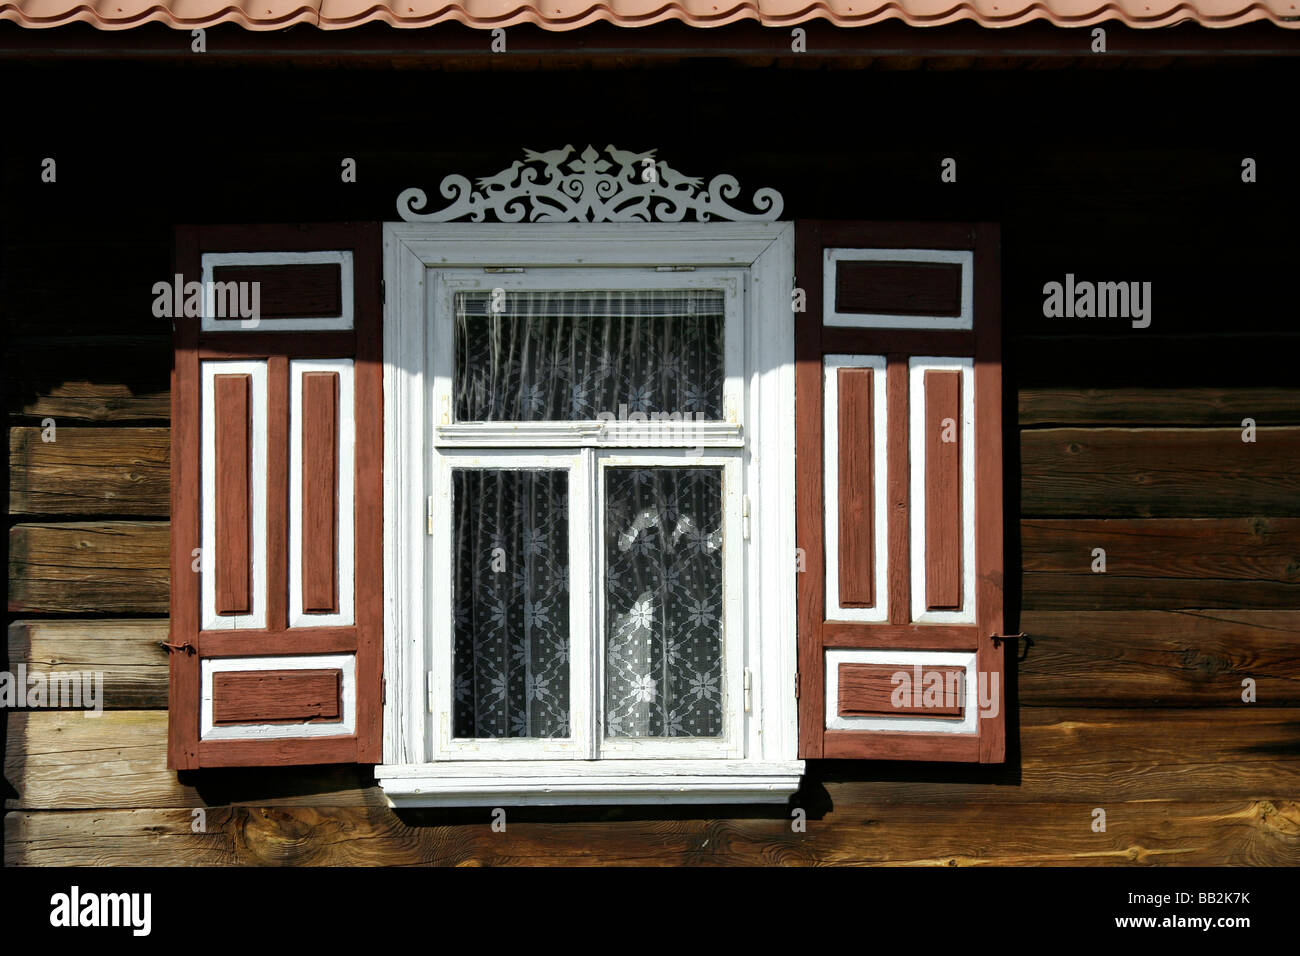 Decorated windows in Soce village, Poland Stock Photo